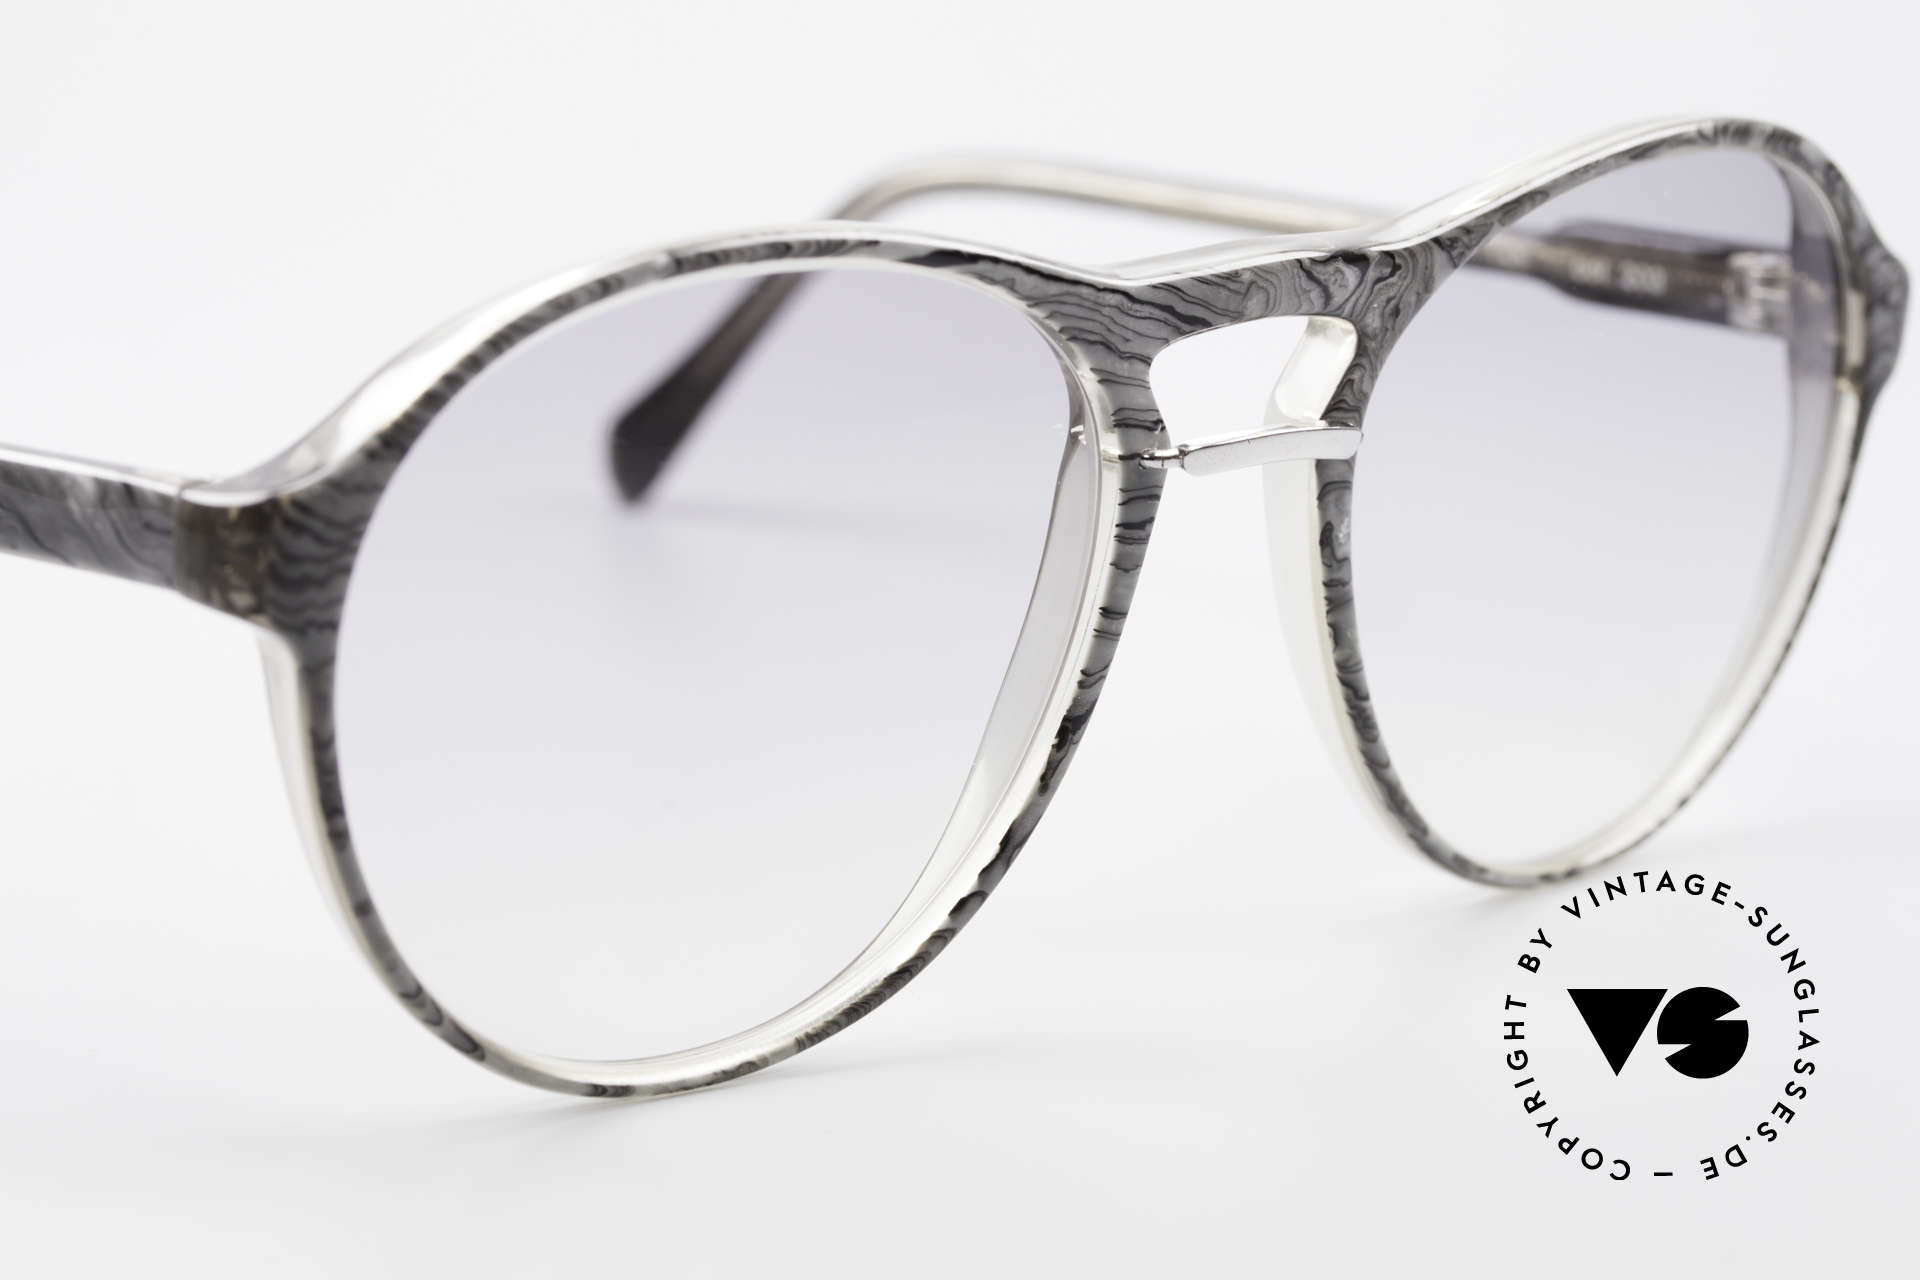 Serge Kirchhofer 211 Modified 70's Panto Shades, NO RETRO FRAME, but a genuine 40 years old unicum, Made for Men